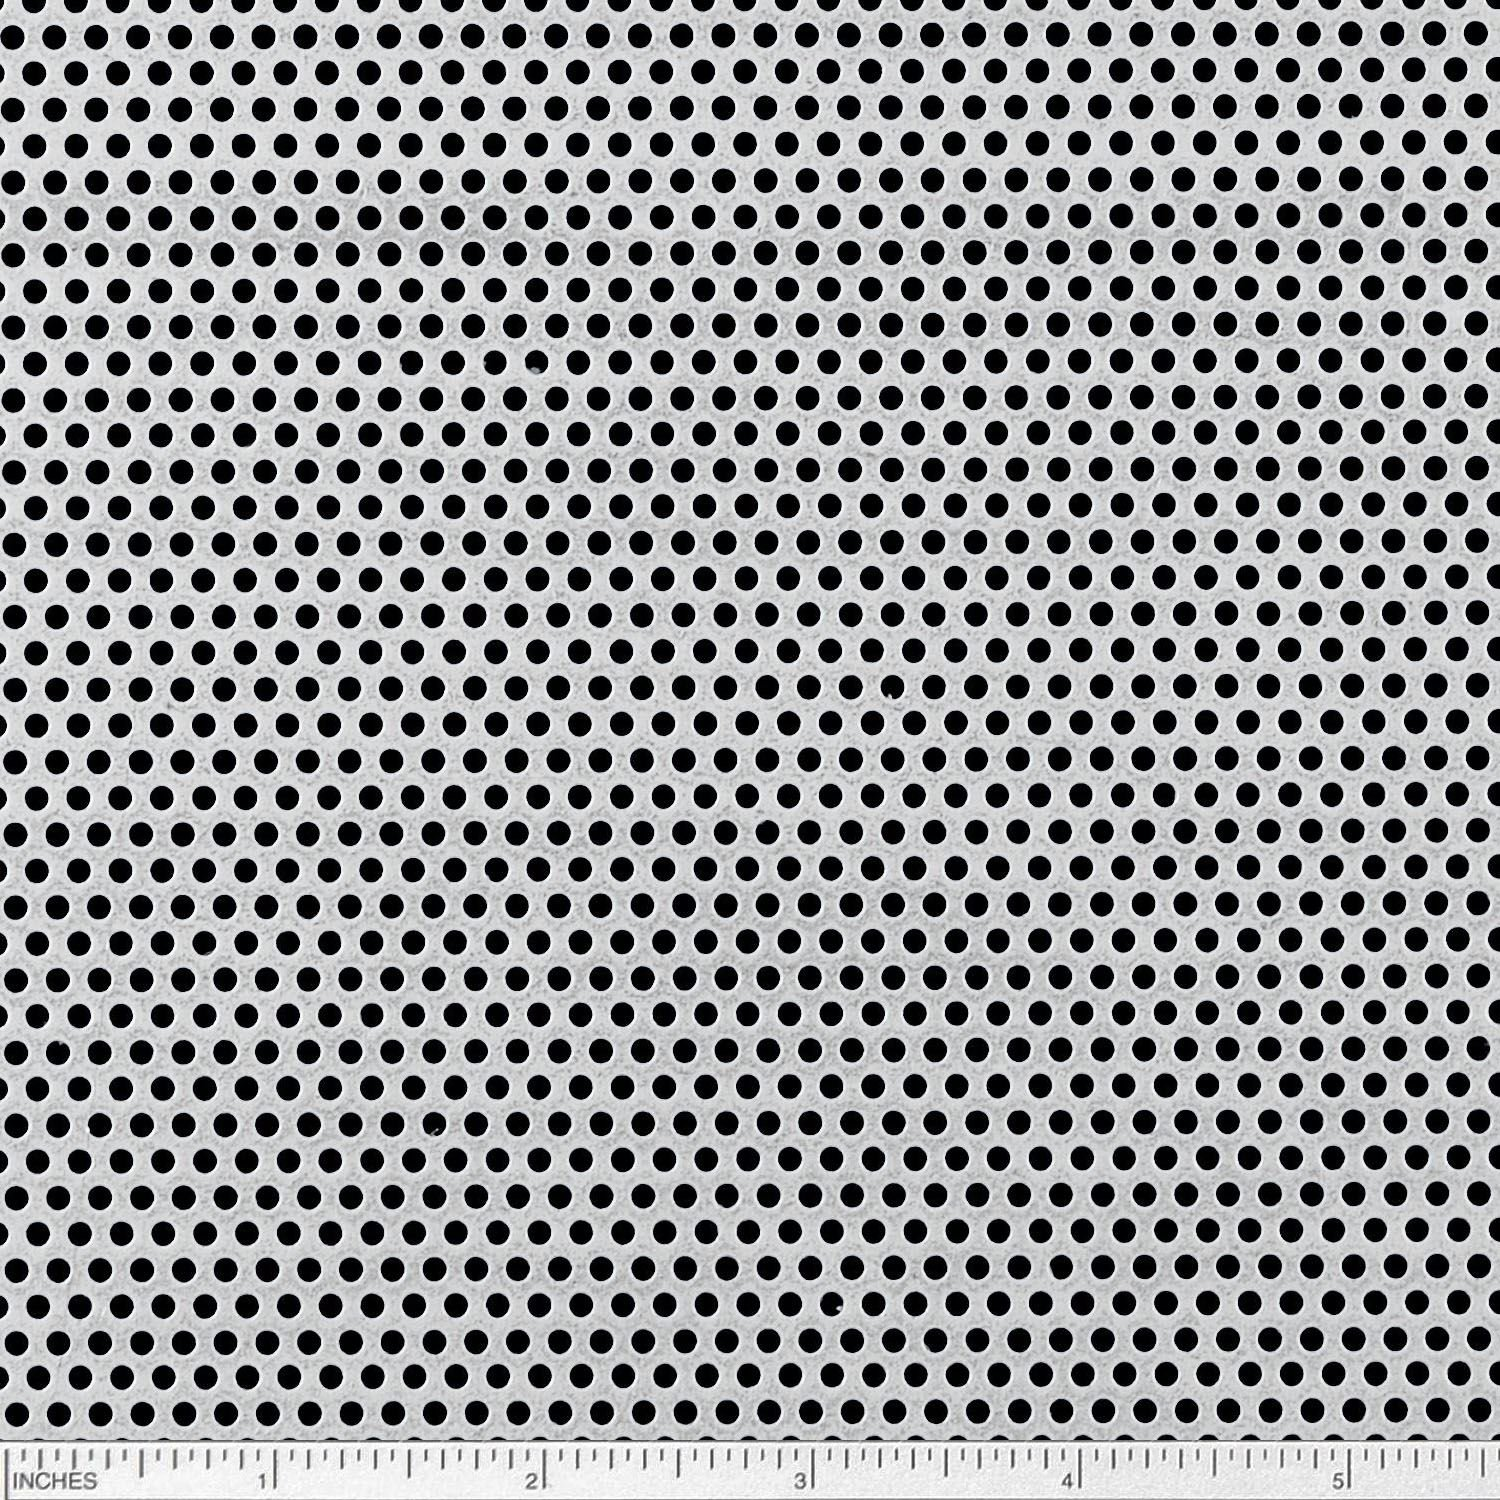 Online Metal Supply Steel Perforated Sheet, Thickness: 0.075 (14 ga.), Width: 12', Length: 24', Hole Size: 0.093 (3/32), Staggered 0.156 (5/32) Width: 12 Length: 24